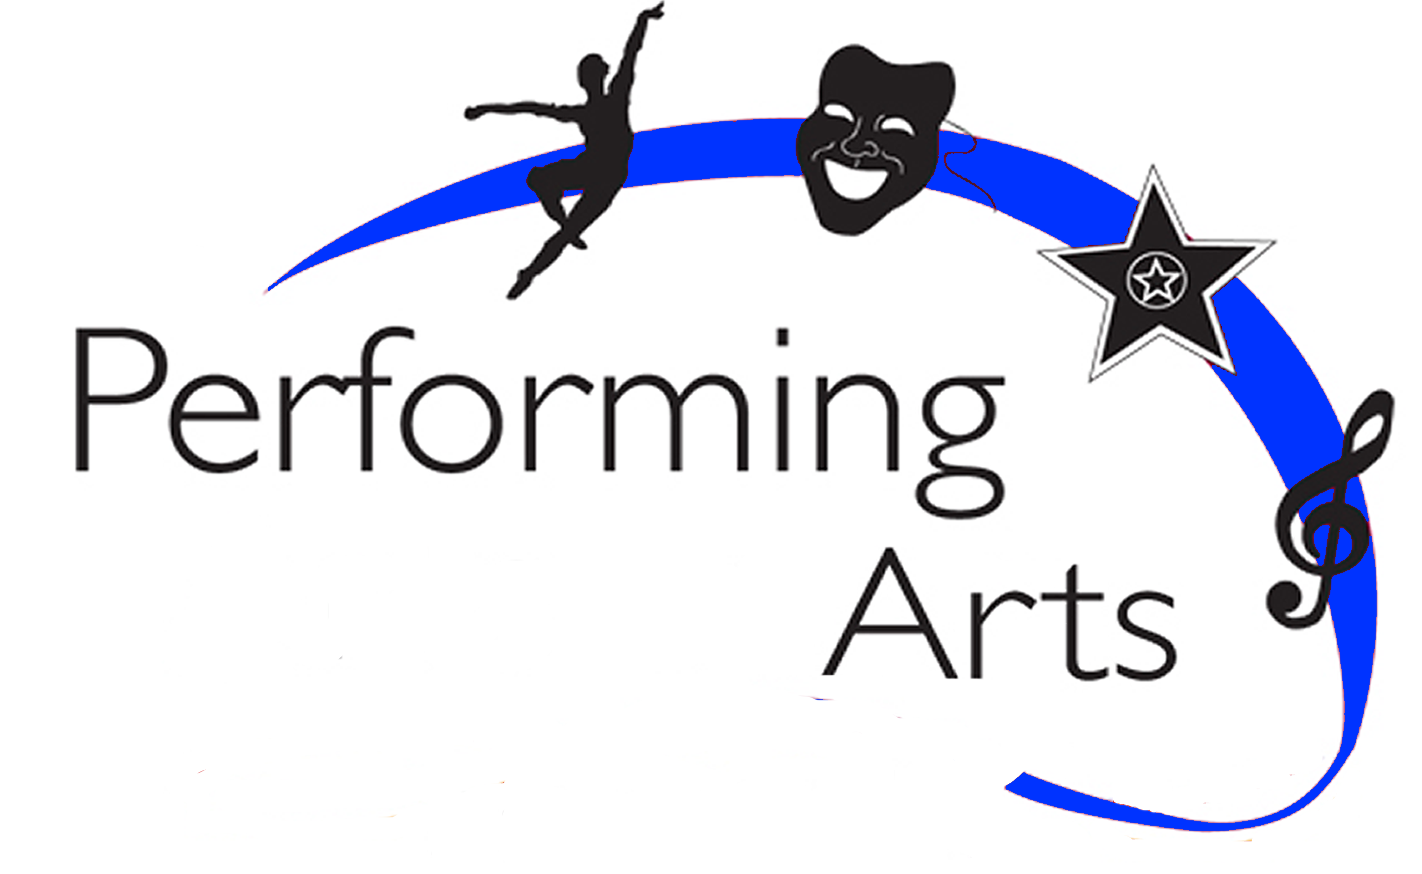 Musician clipart performing art. Brownhills school arts drama